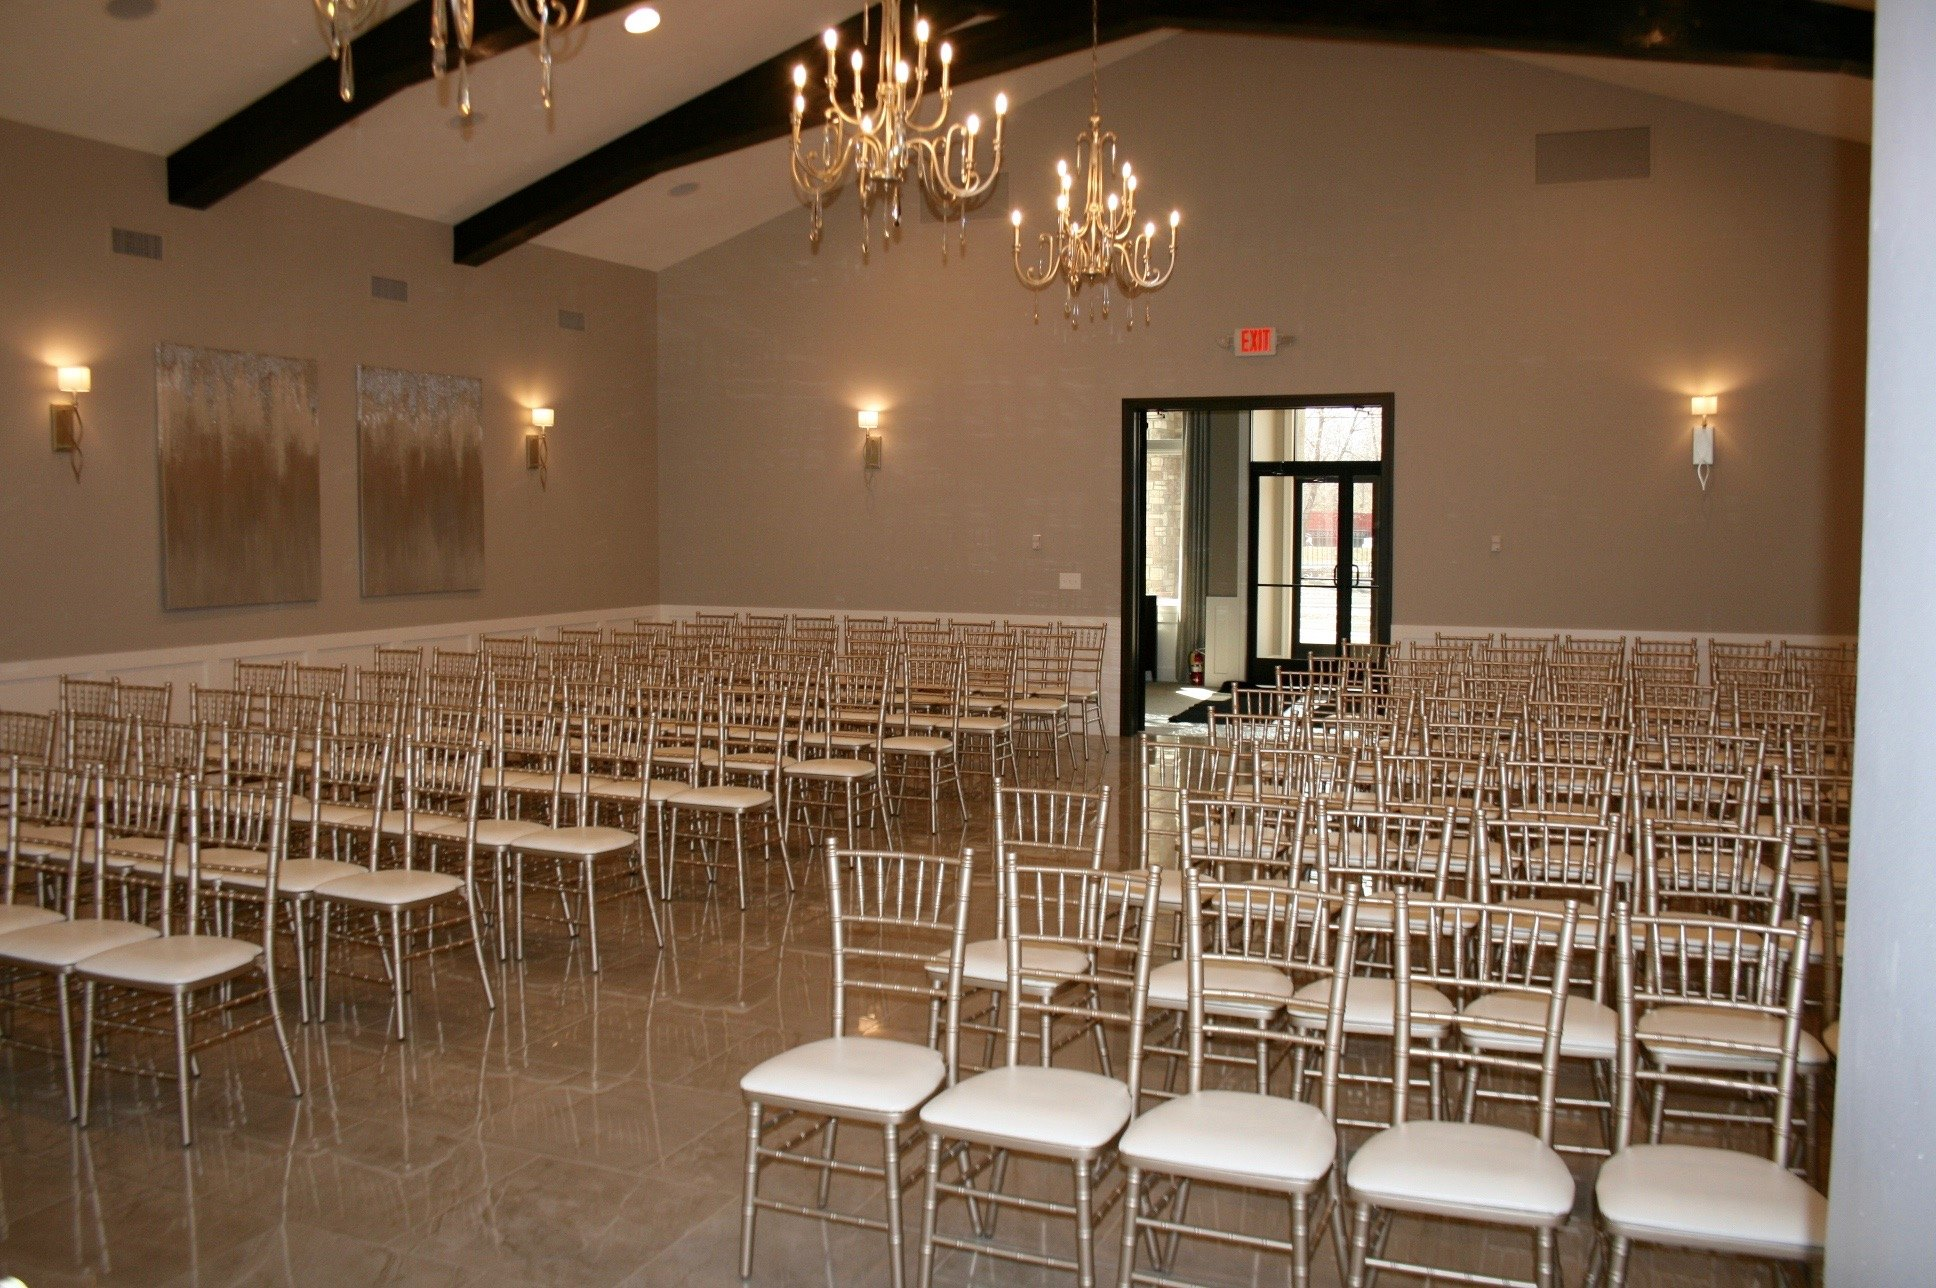 Photo Gallery | Vintage Gardens Wedding Chapel and Event Center